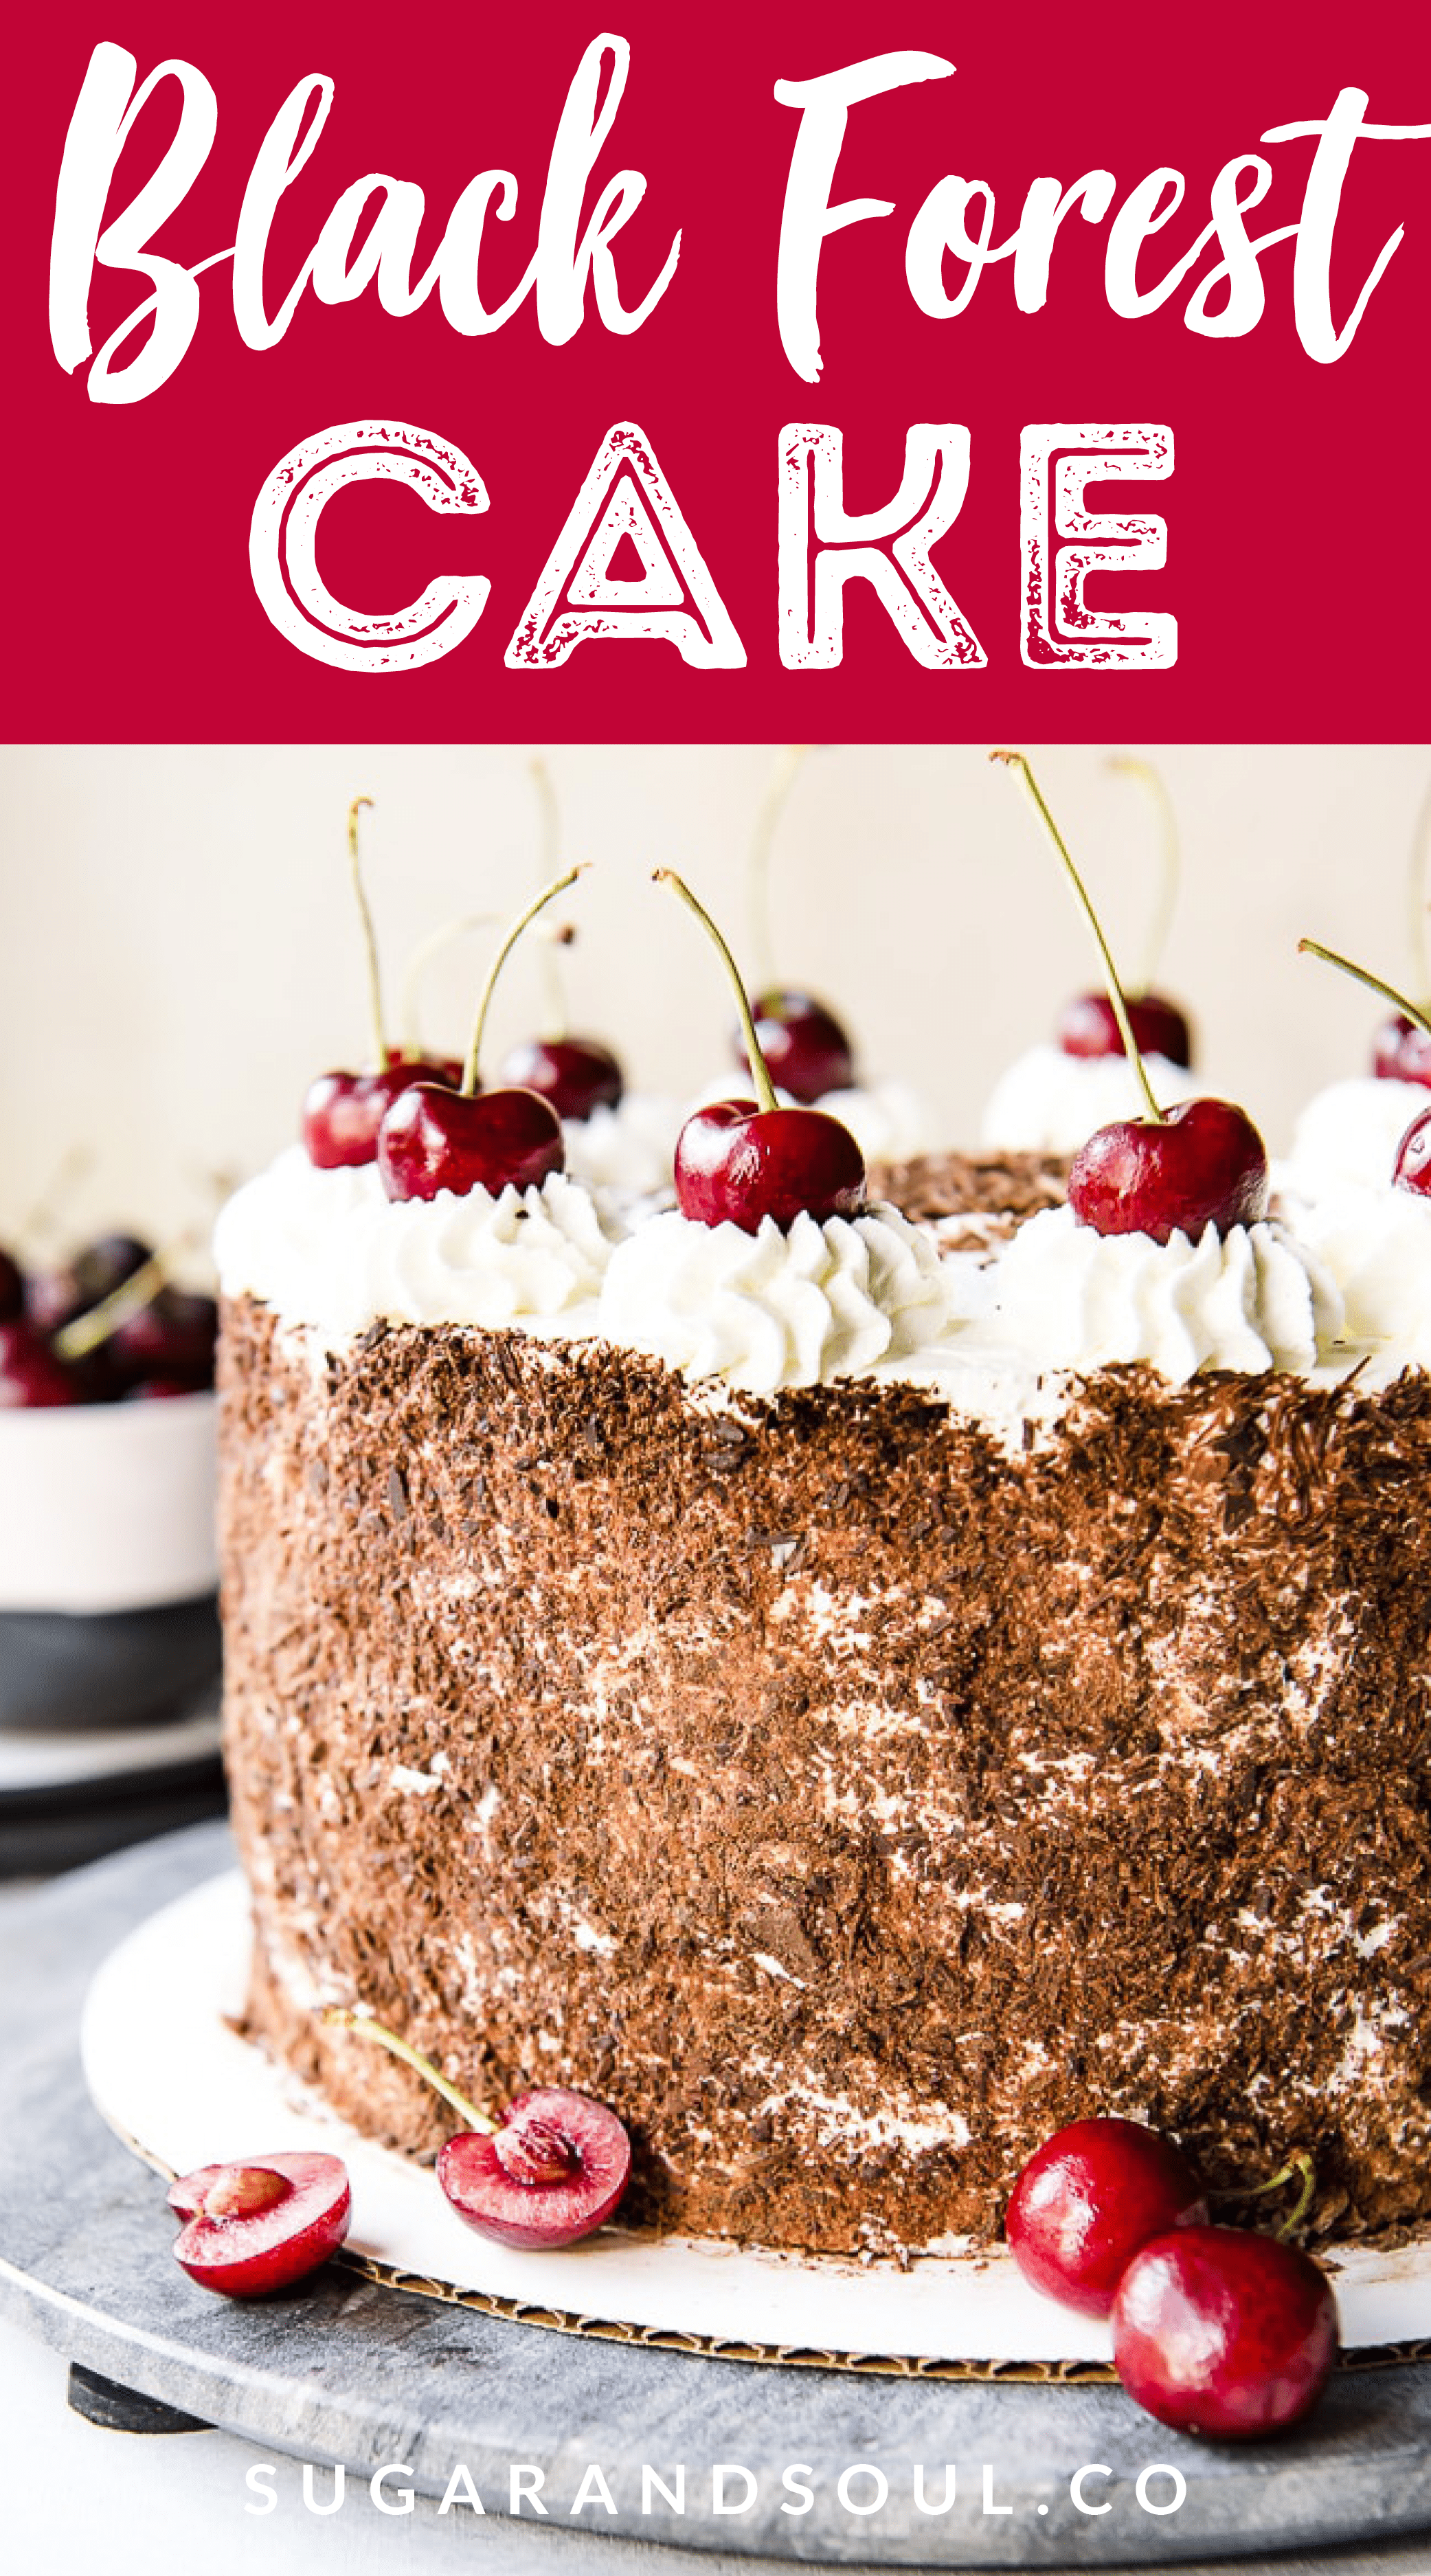 Decadent chocolate cake + boozy cherry filling + sweet whipped cream = a recipe for Black Forest Cake perfection! You're gonna love this classic German dessert! via @sugarandsoulco